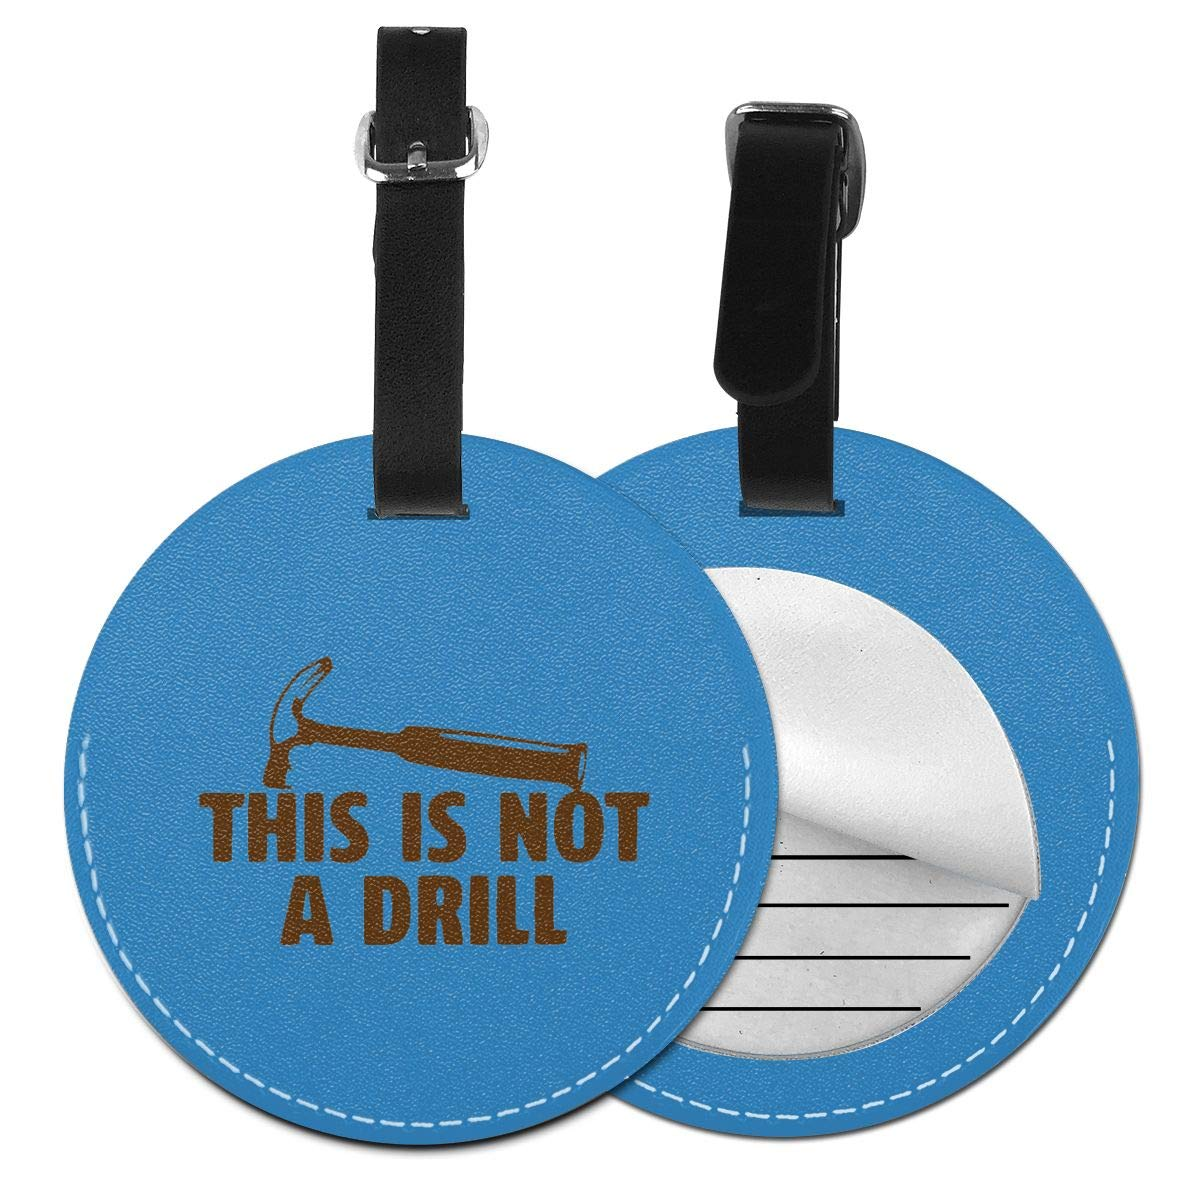 This Is Not A Drill Pu Leather Double Sides Print Round Luggage Tag Mutilple Packs 1pcs,2pcs,4pcs